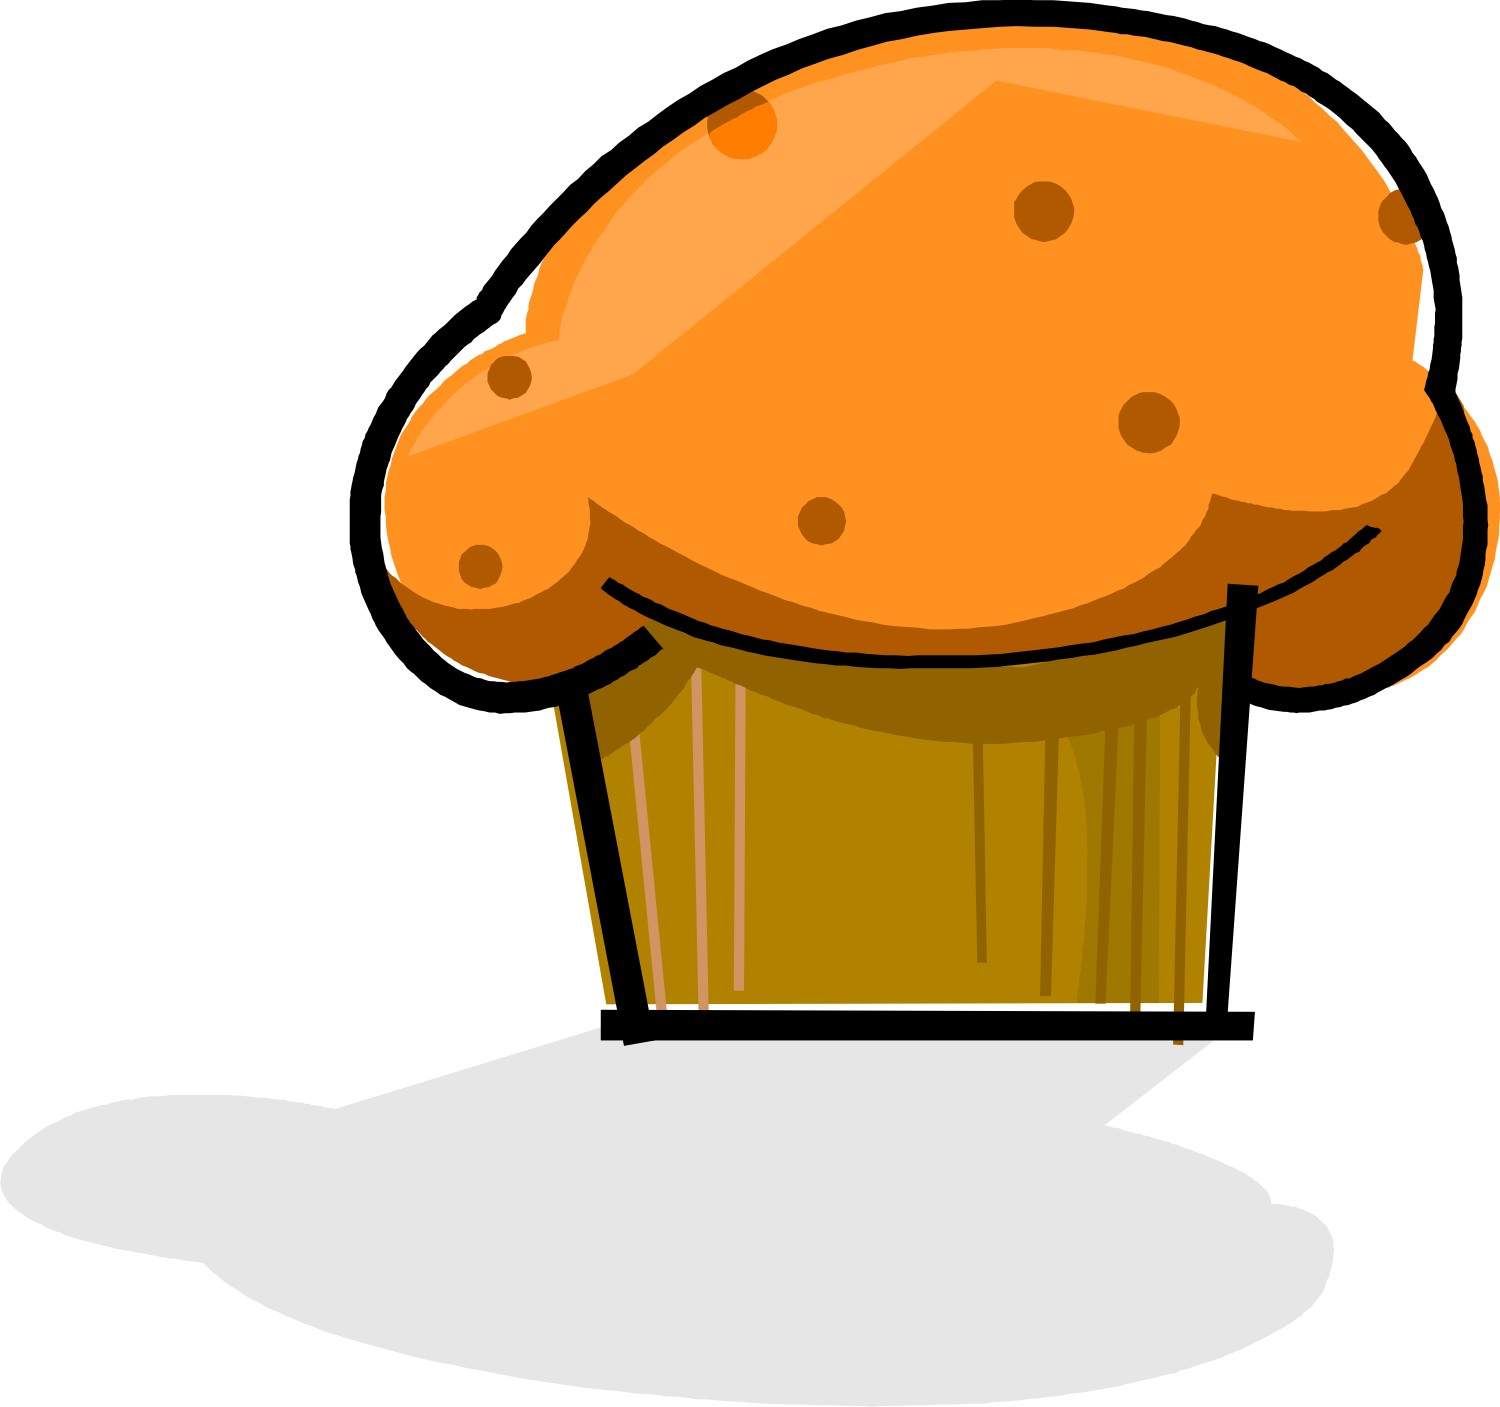 Muffins clipart january. Shrinking bunny s buns